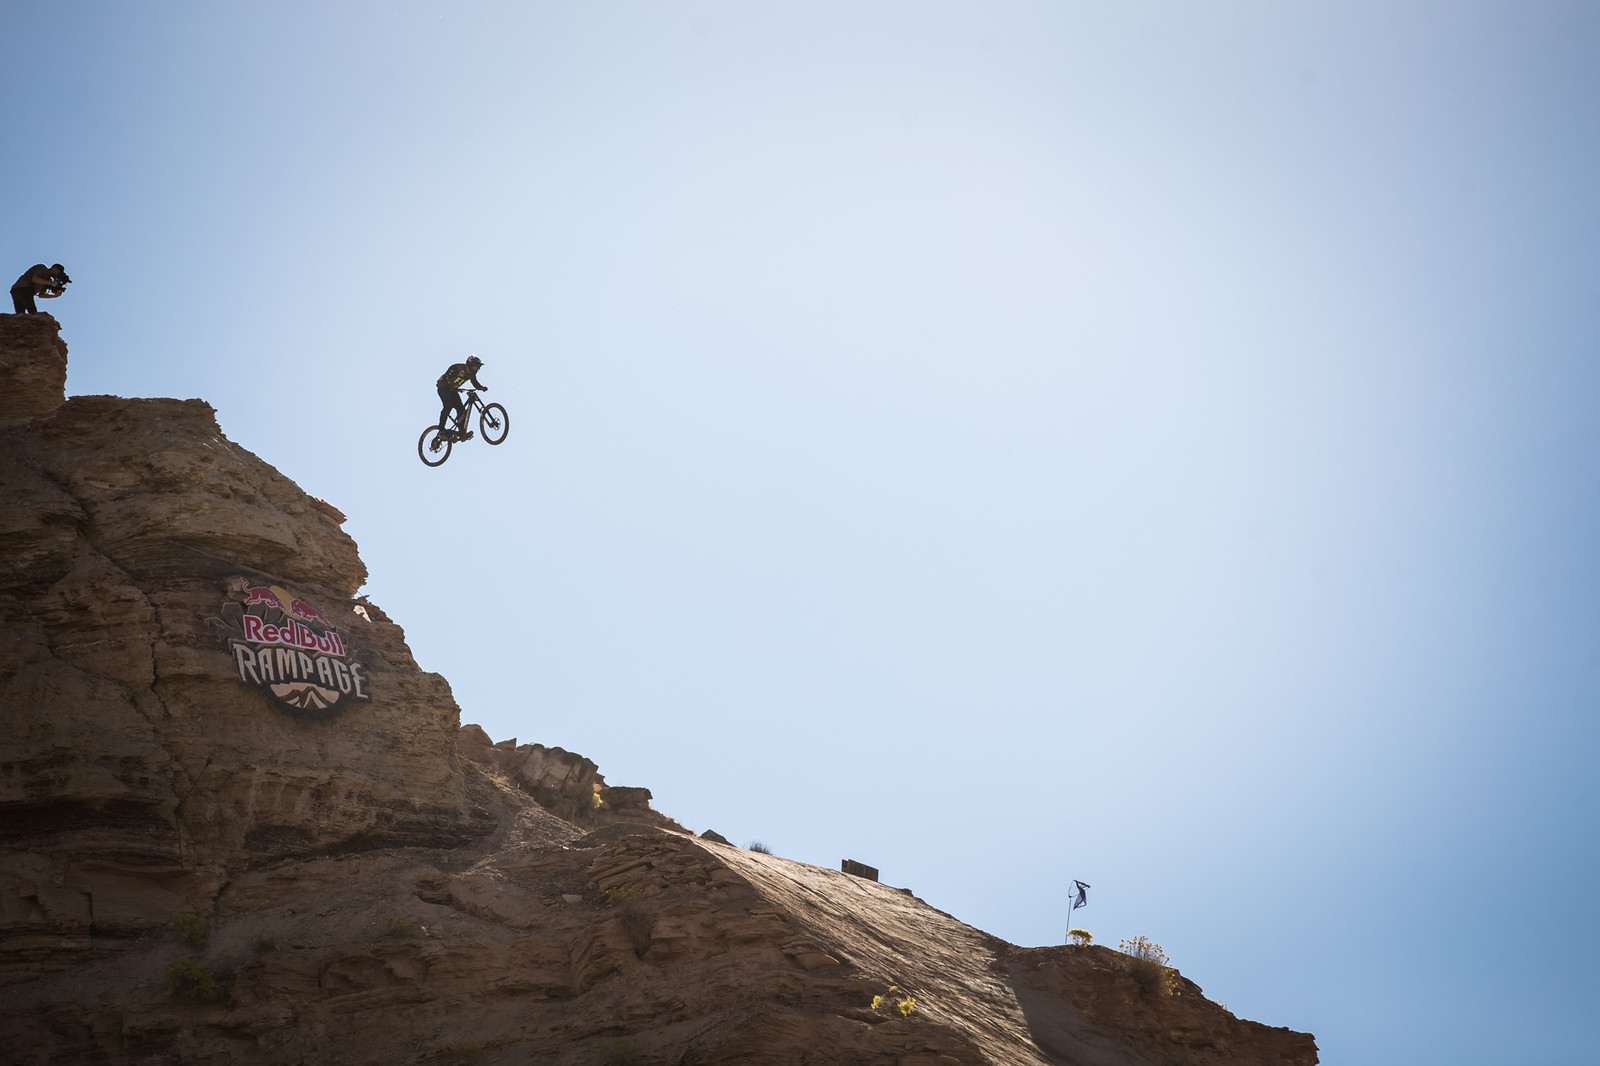 Sorge Soars at Rampage 2019 - 2019 Red Bull Rampage Finals Photos by @maddogboris - Mountain Biking Pictures - Vital MTB